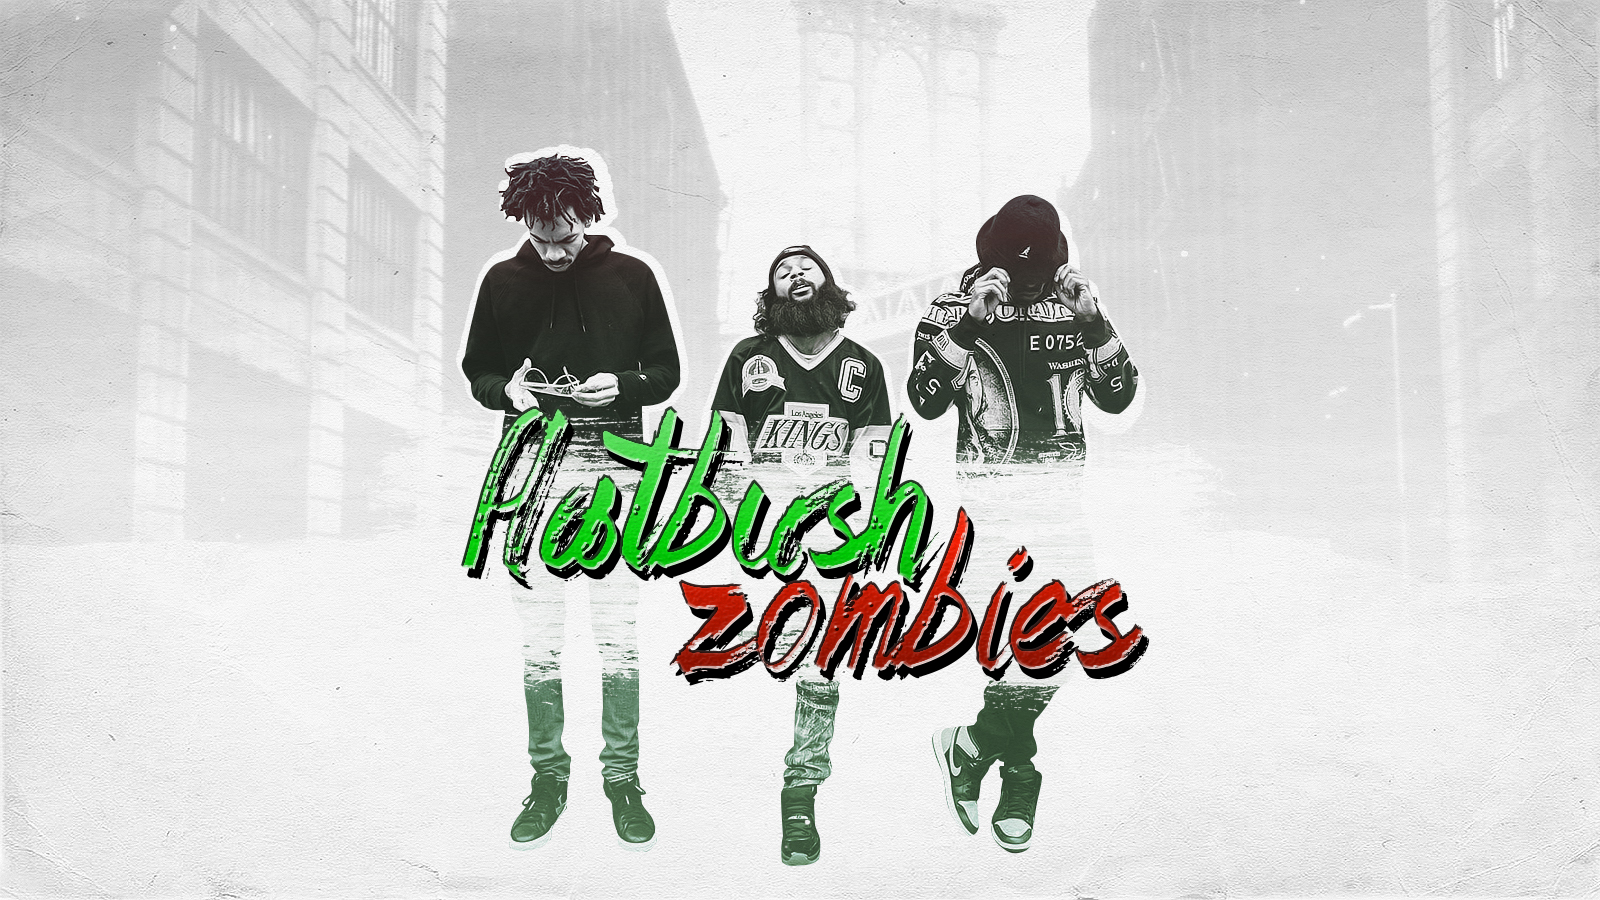 flatbush zombies by hat 94 on deviantart